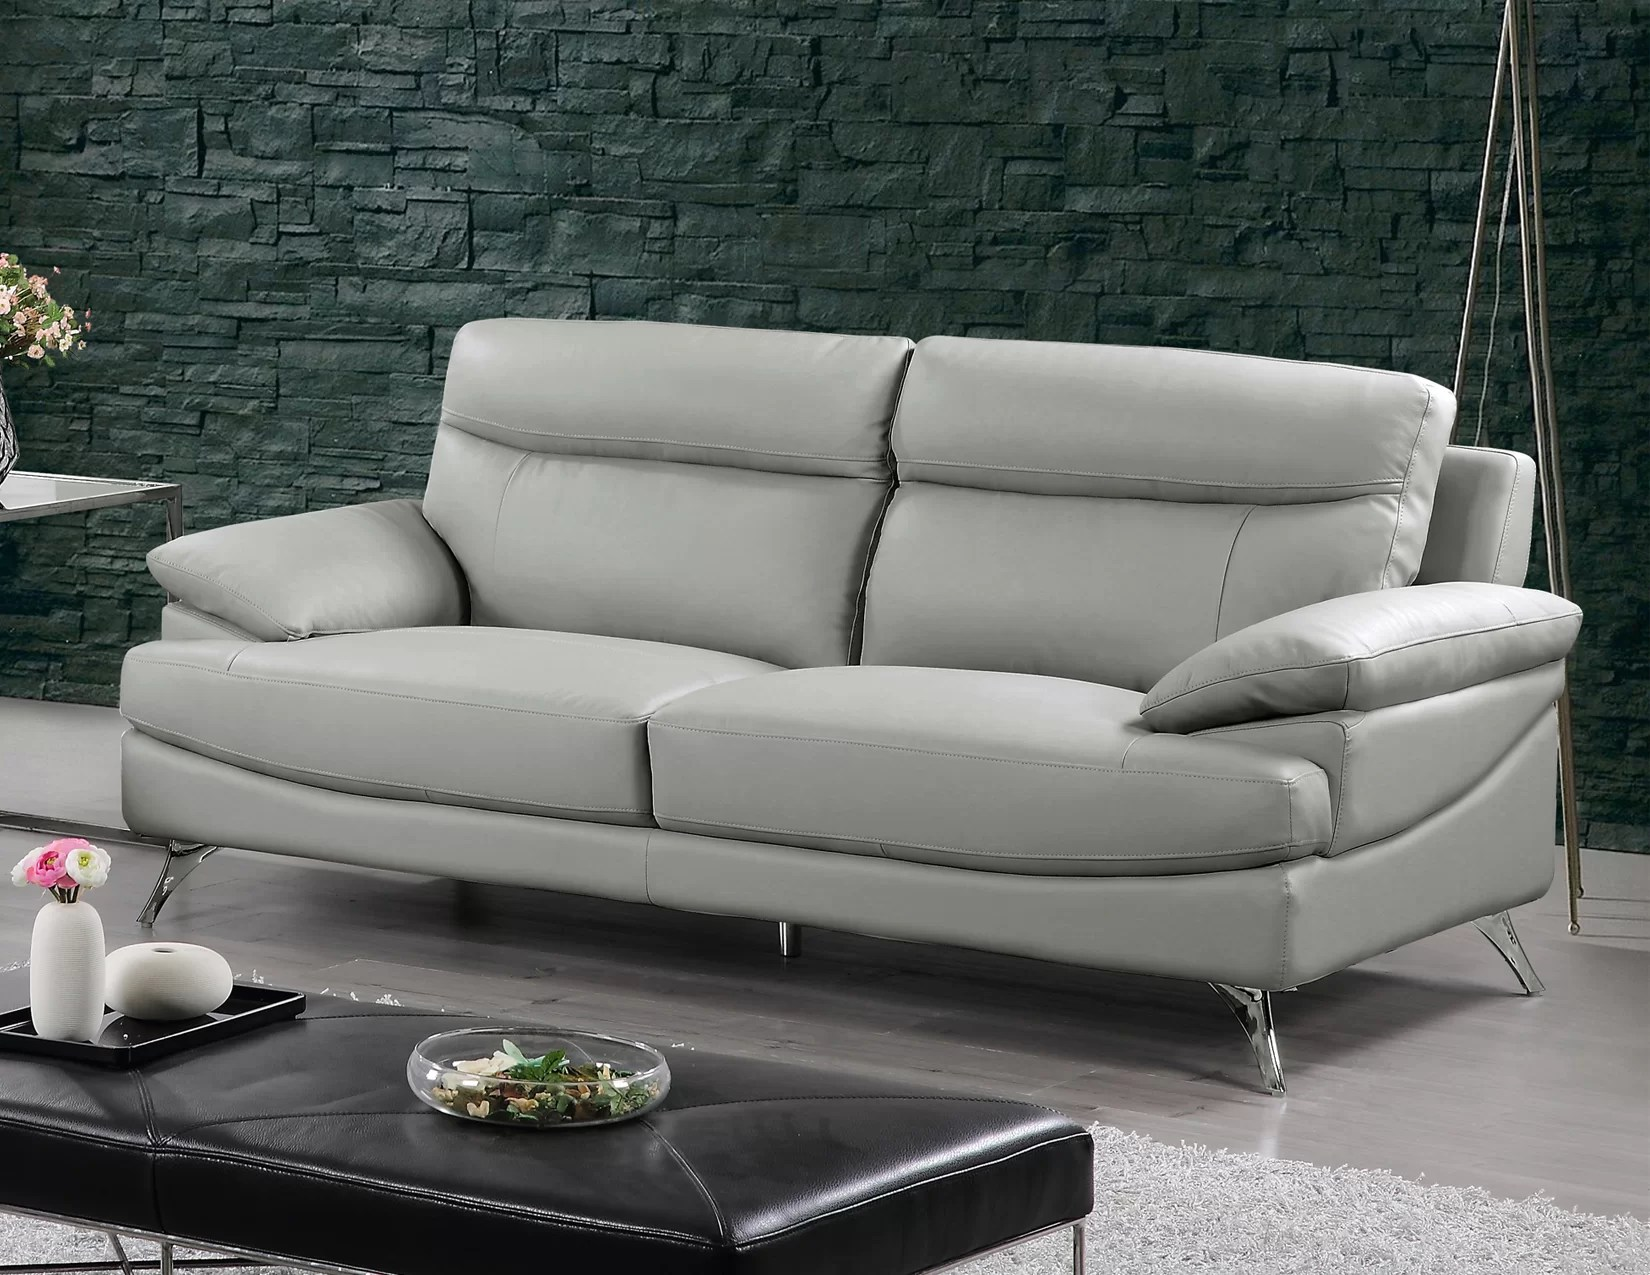 quality sofas midlands reviews buy a sofa bed leather interiors tulsa awesome home